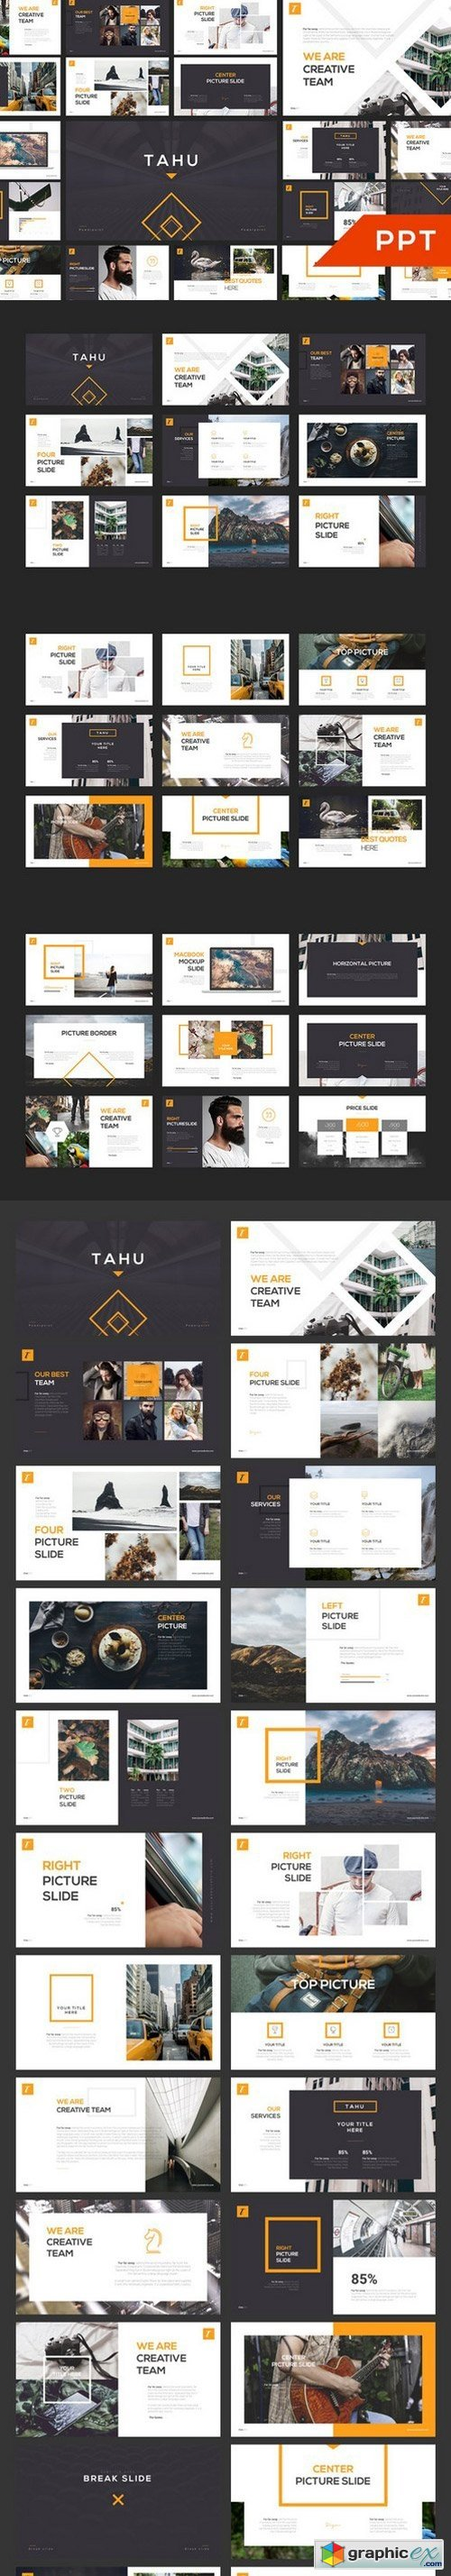 Tahu powerpoint template free download vector stock image tahu powerpoint template alramifo Image collections